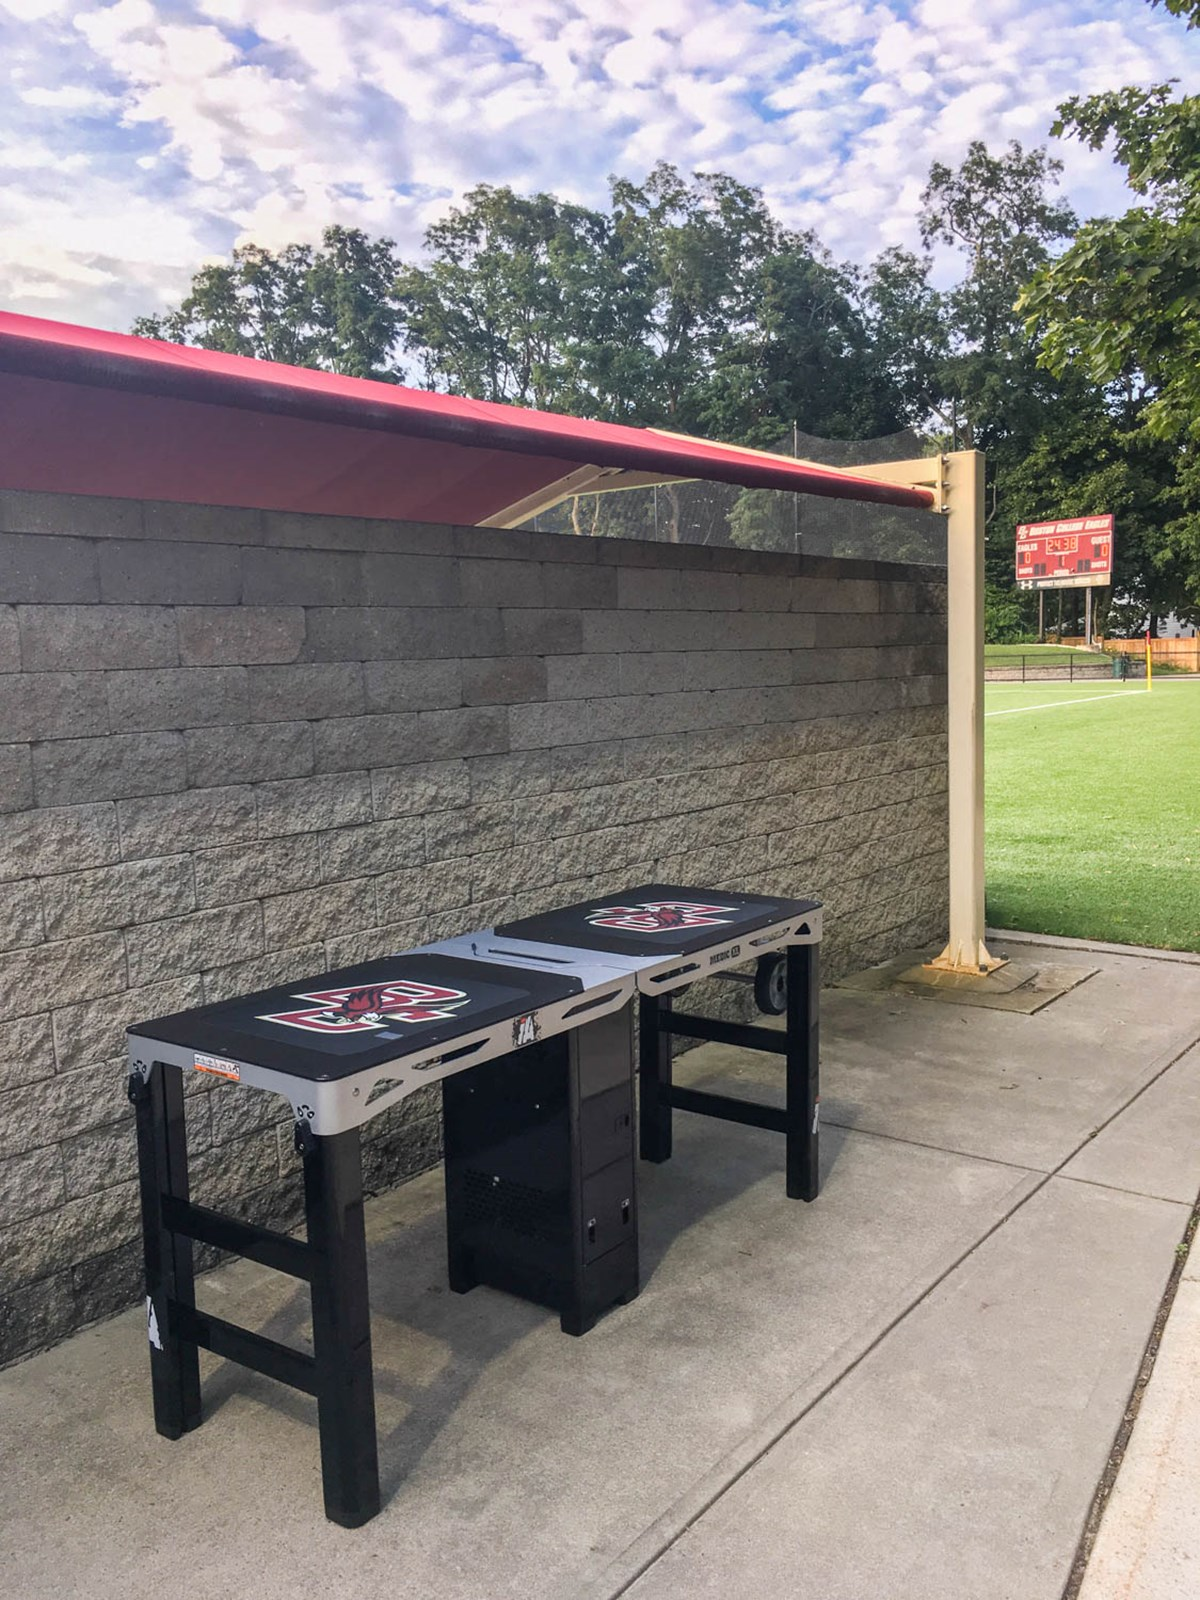 Medic XL athletic training table at Bostom College